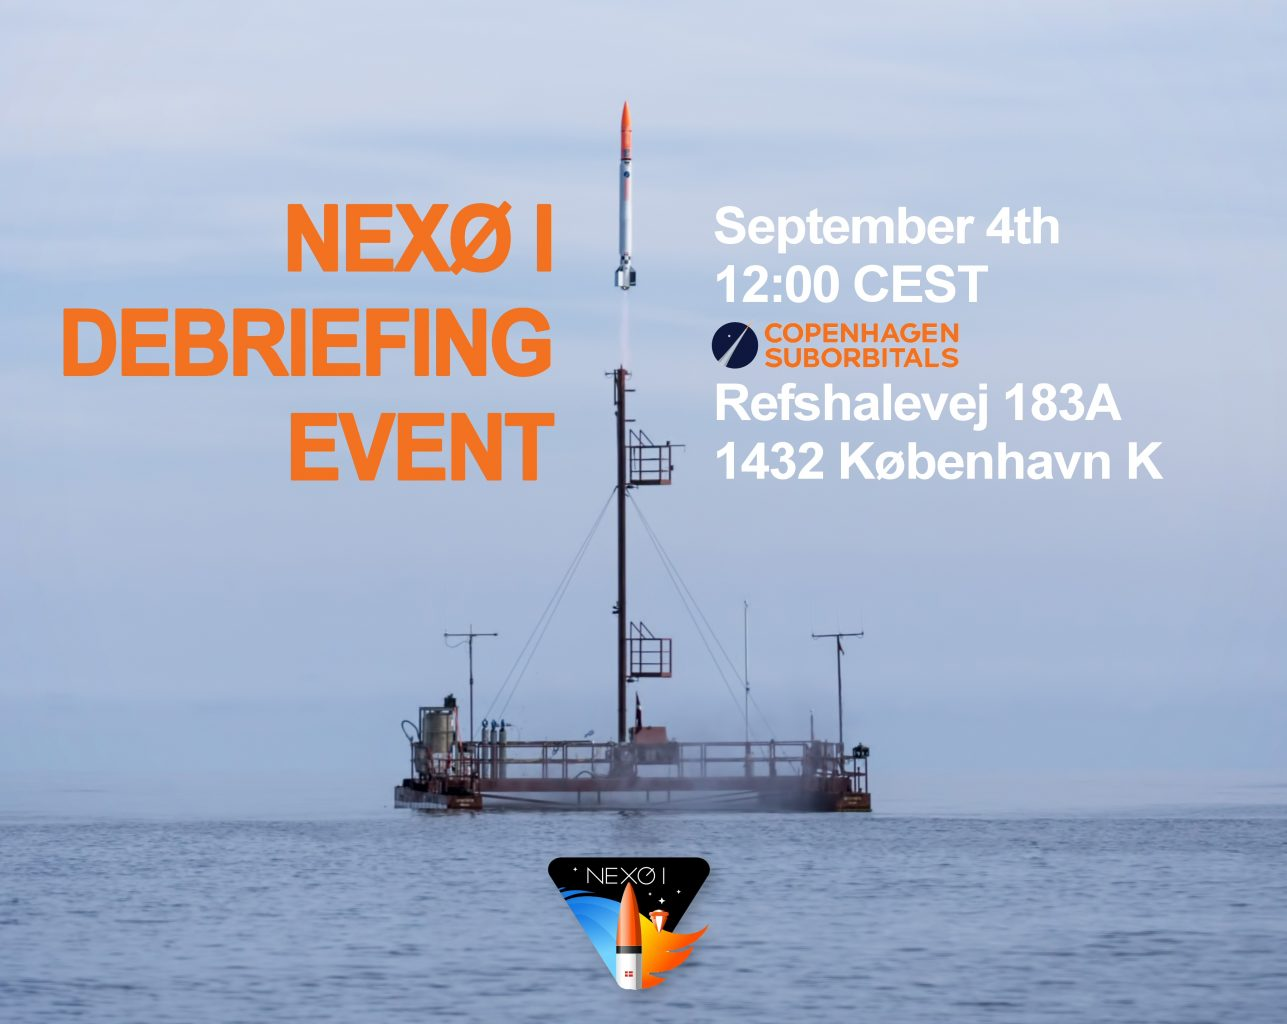 Nexø I rocket launch debriefing poster